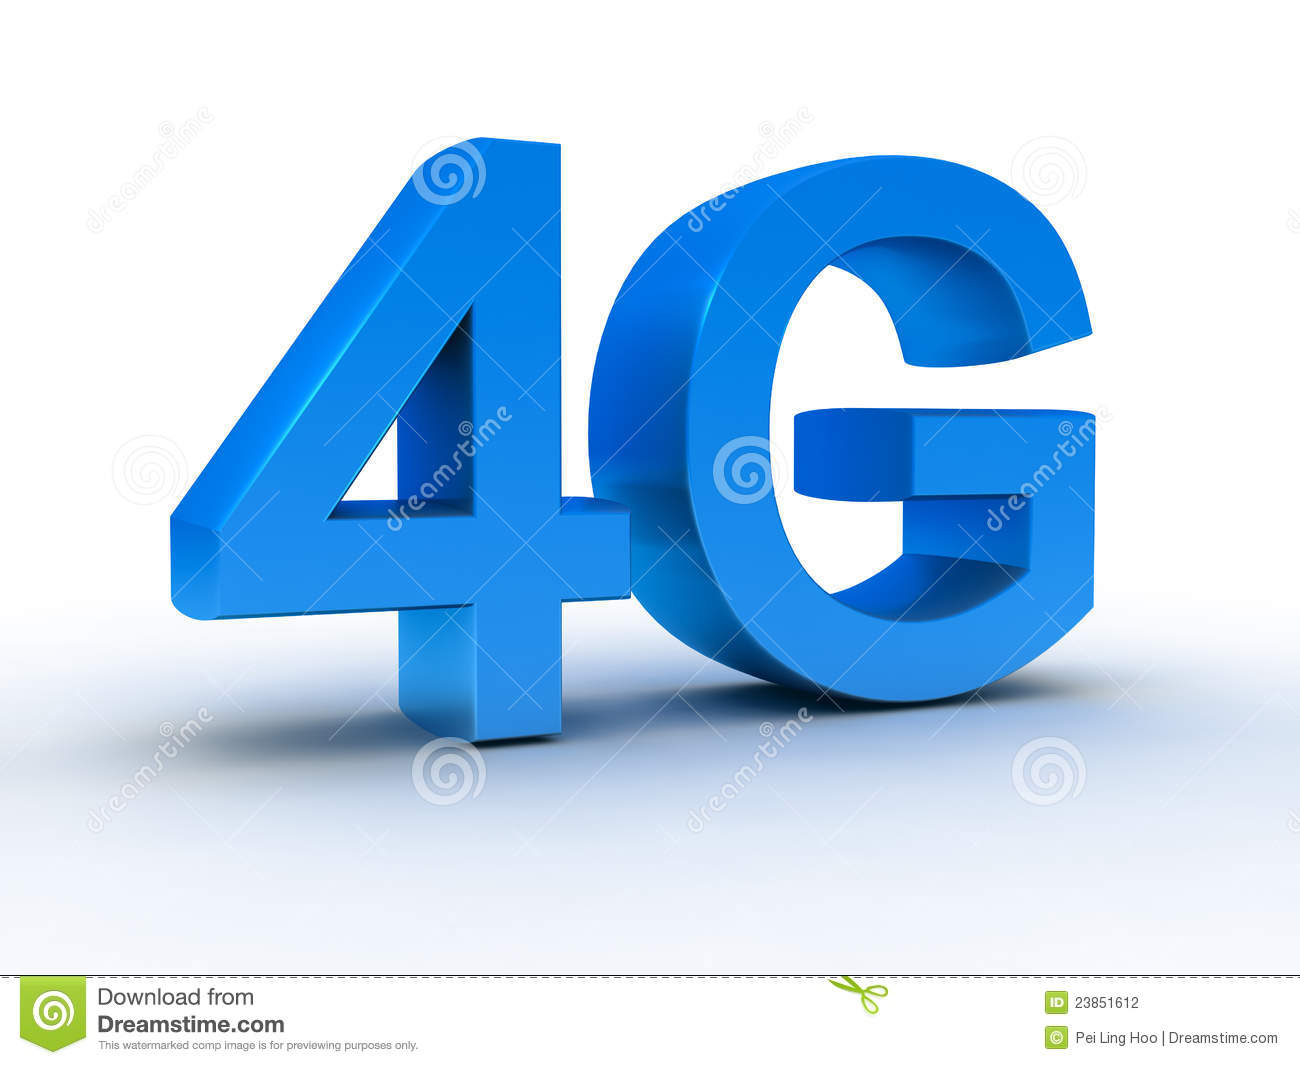 4g communication 4g wireless standard introduction features of 4g the first generation wireless mobile communication systems were introduced in early eighties and second generations systems in the in 4g systems rate-adaptive coding schemes can be used which can make use of the channel.